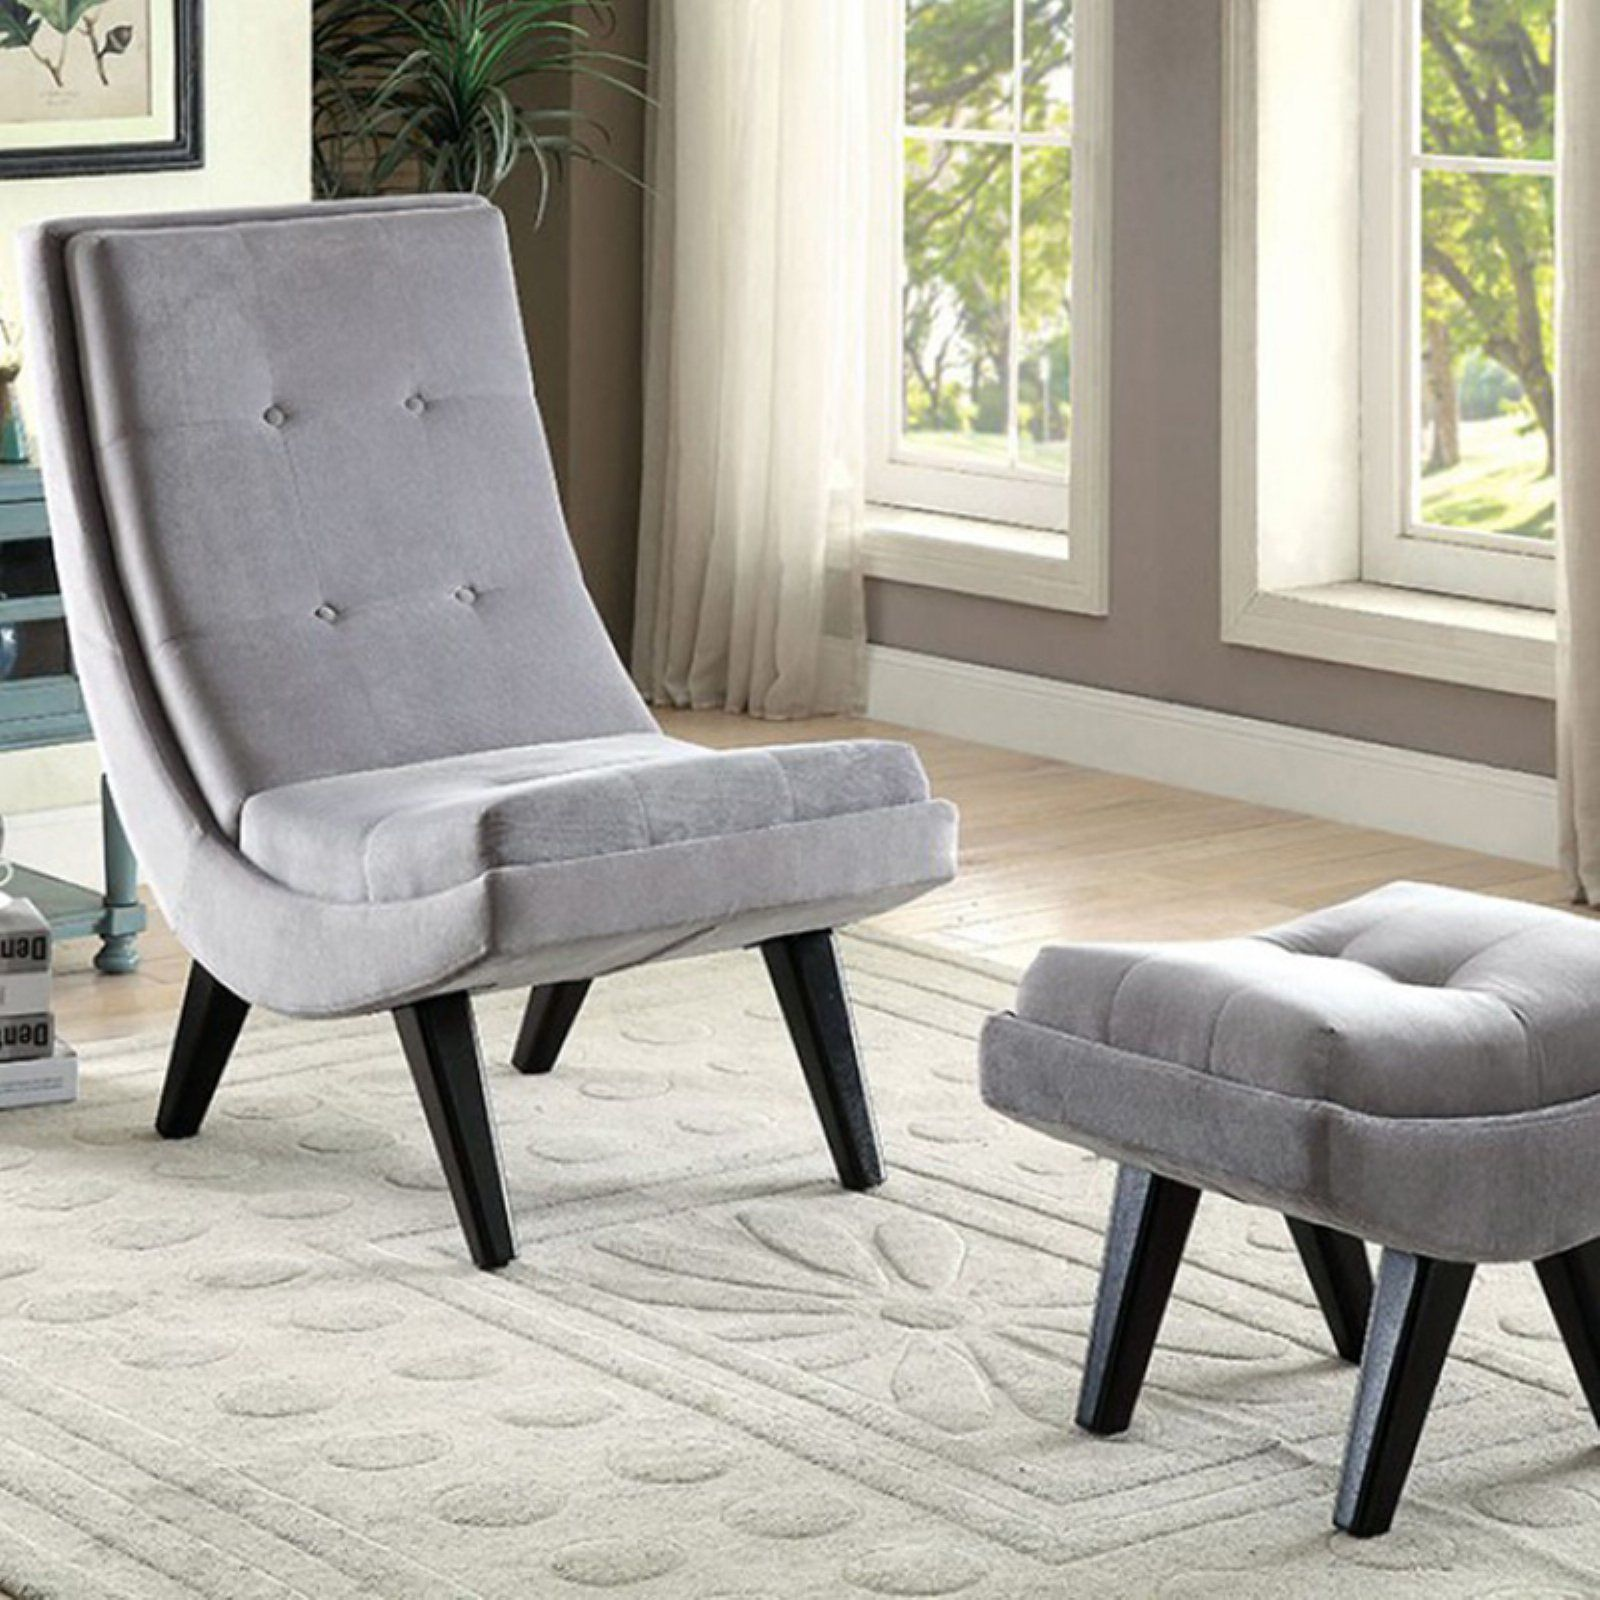 Chairs With Ottoman Benzara Esmeralda Accent Chair With Ottoman In 2019 Products